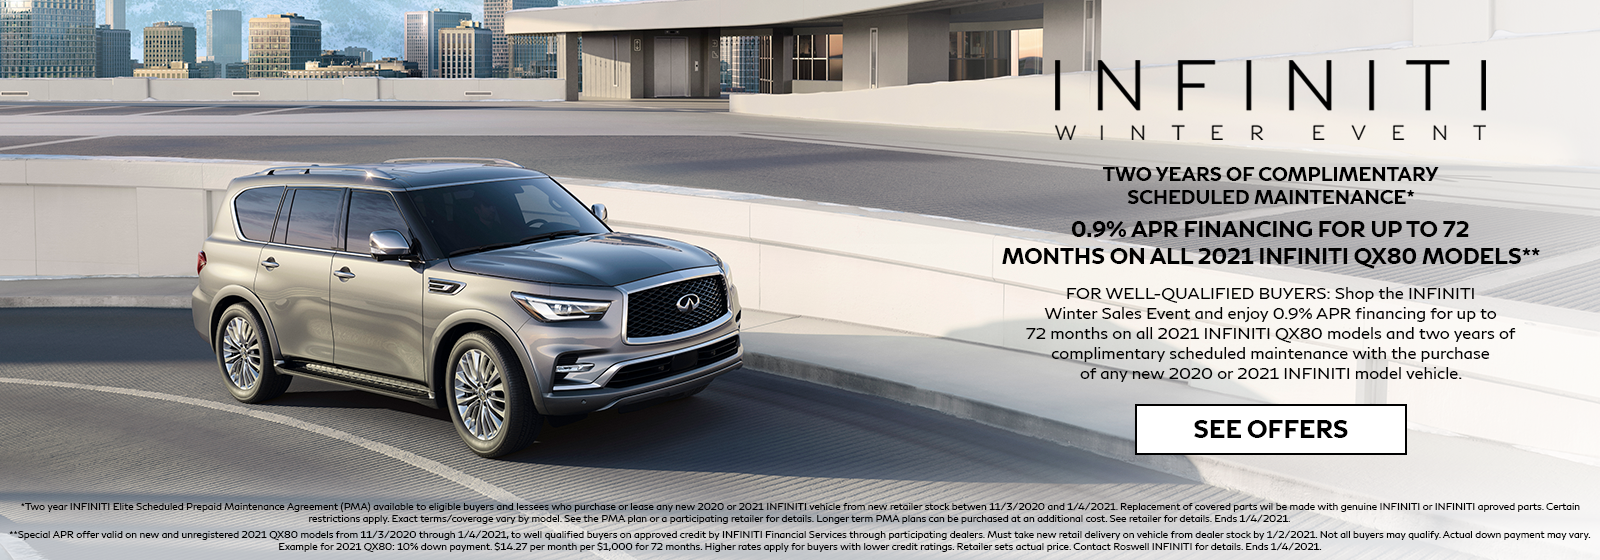 0.9% APR for 72 months on 2021 INFINITI QX80